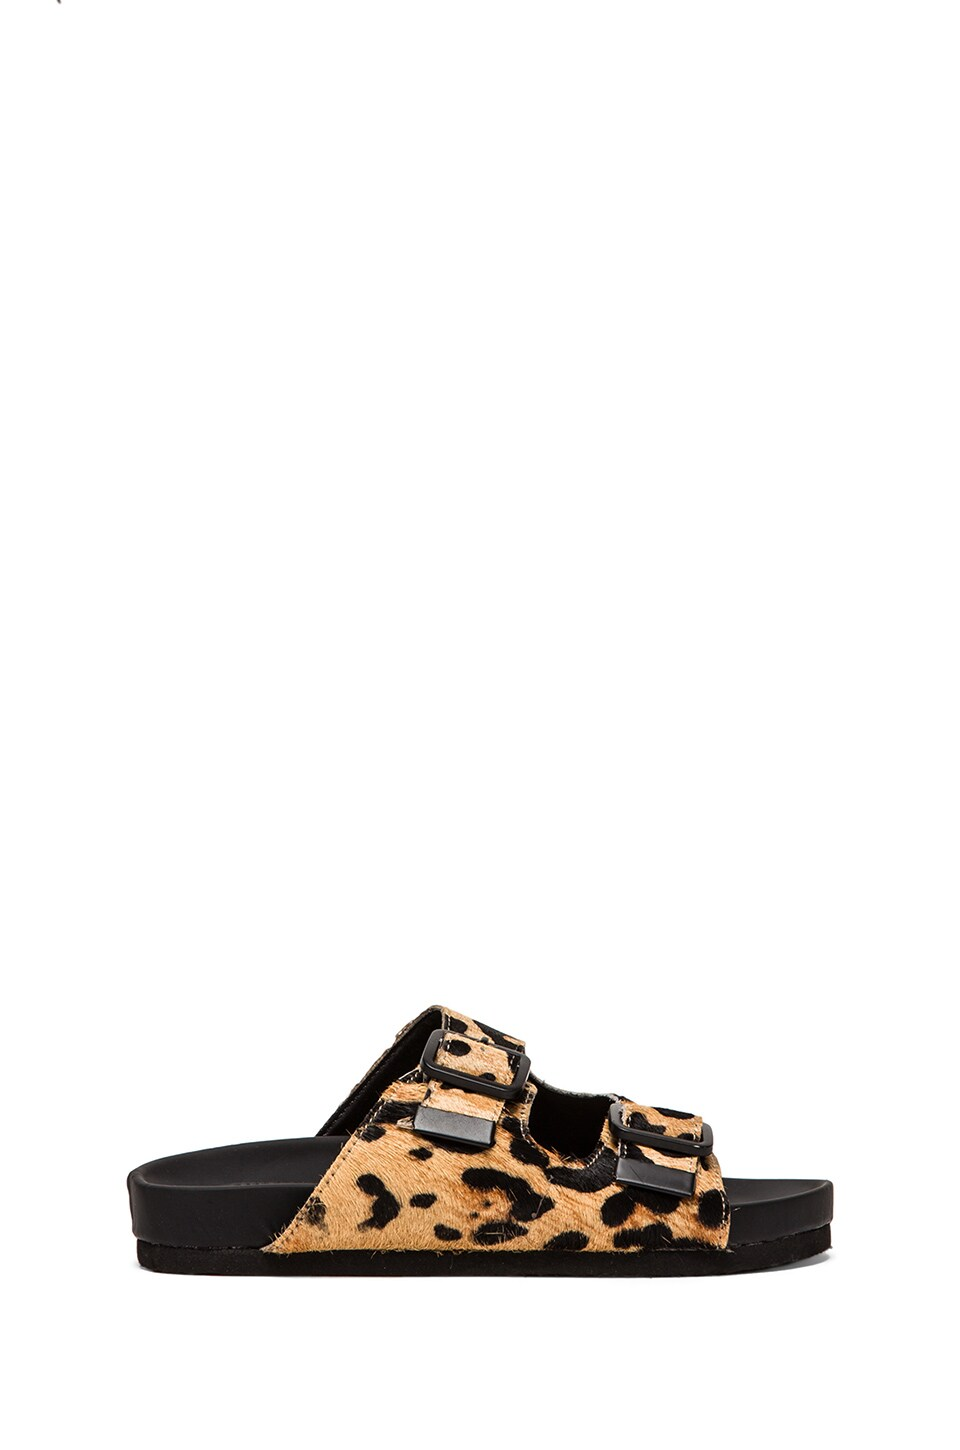 Steve Madden Boundree Sandal in Leopard Pony